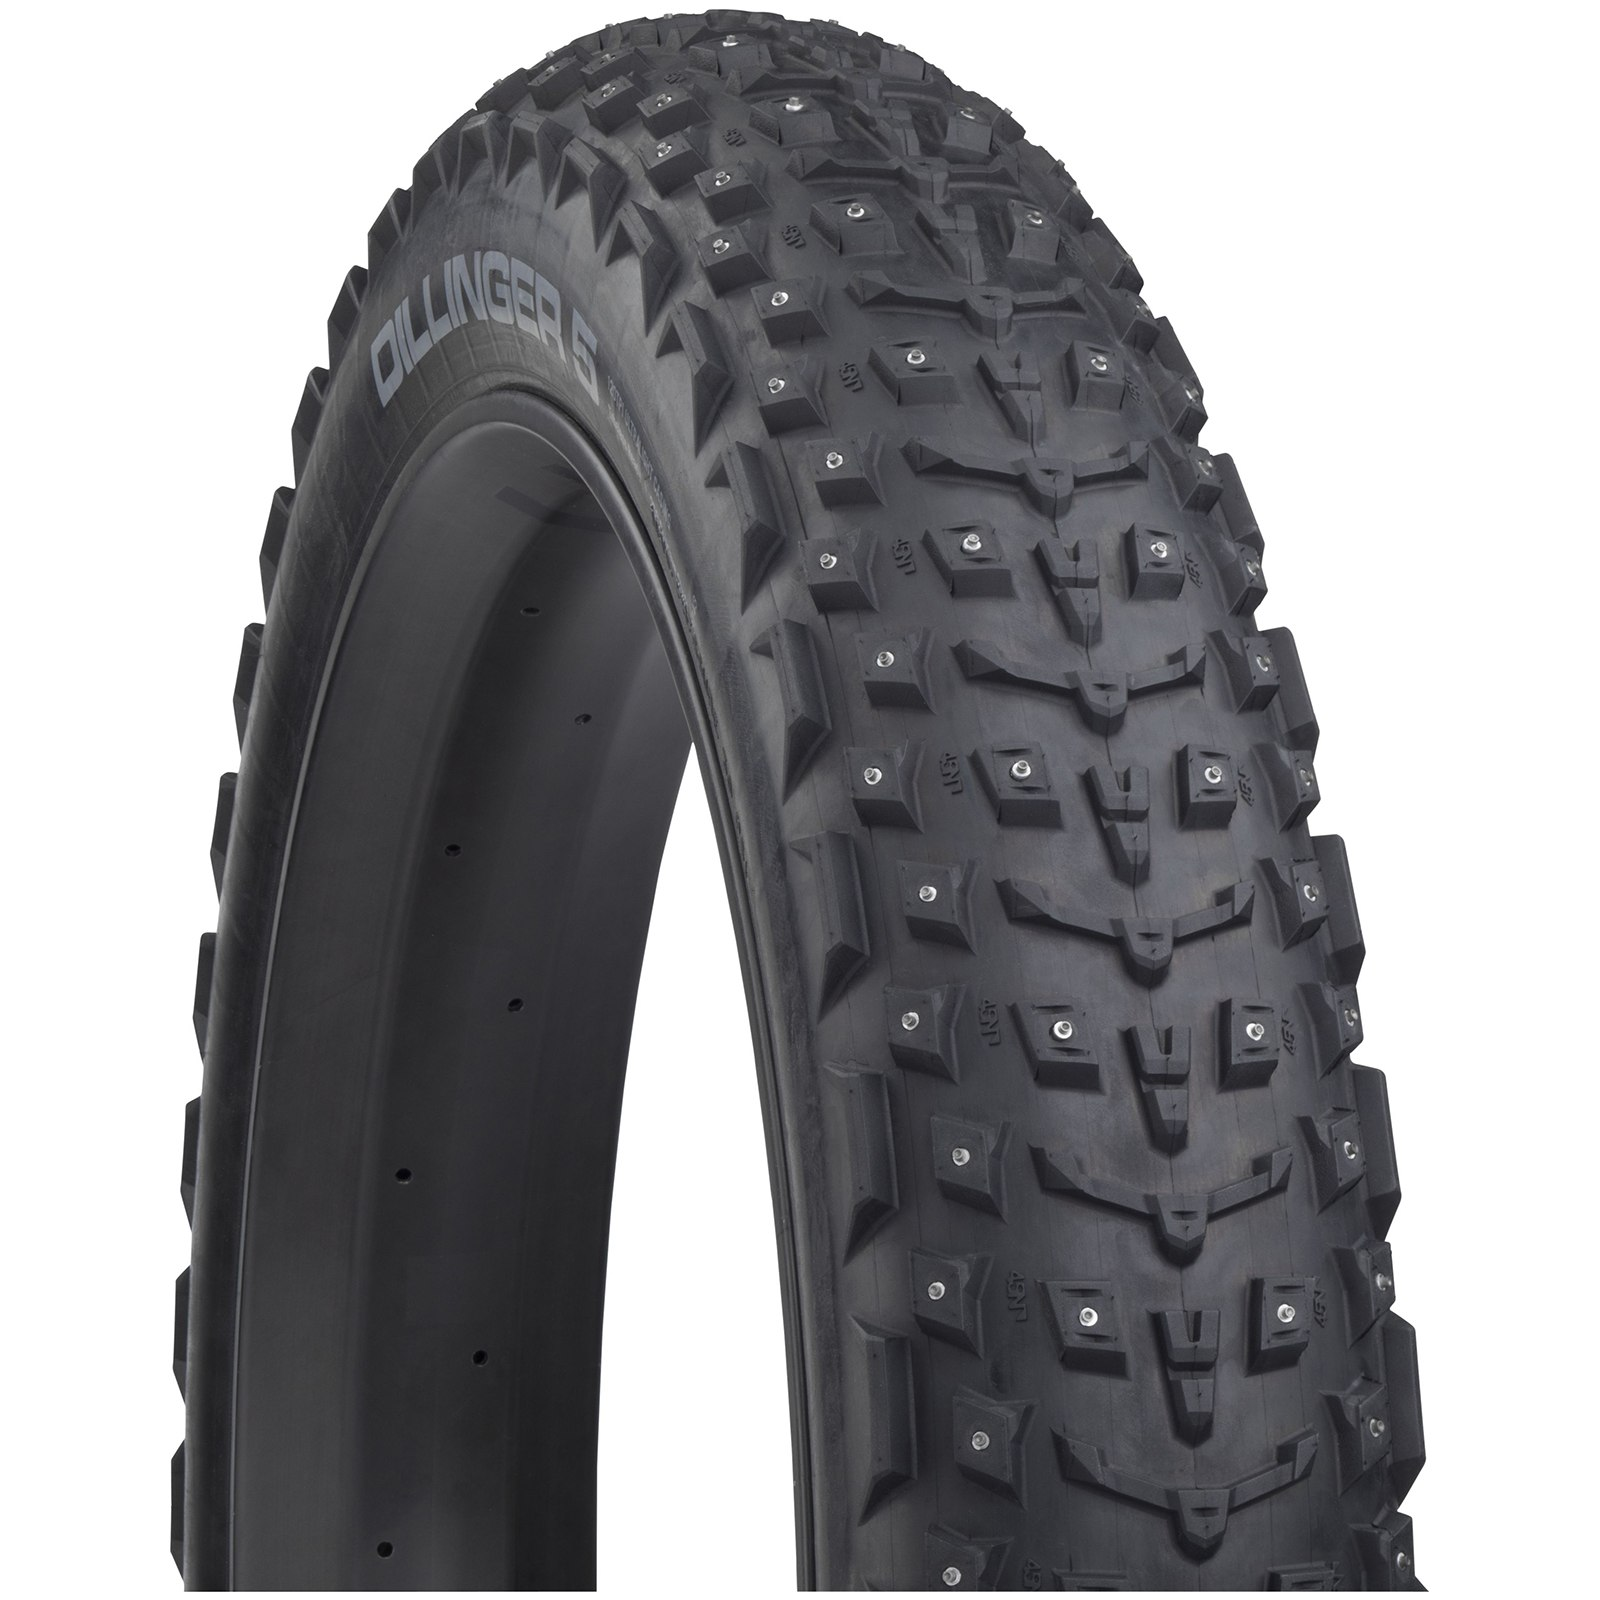 45NRTH Dillinger 5 Fatbike Folding Tire with 258 Studs - Tubeless Ready - 26x4.6 Inches - 60TPI